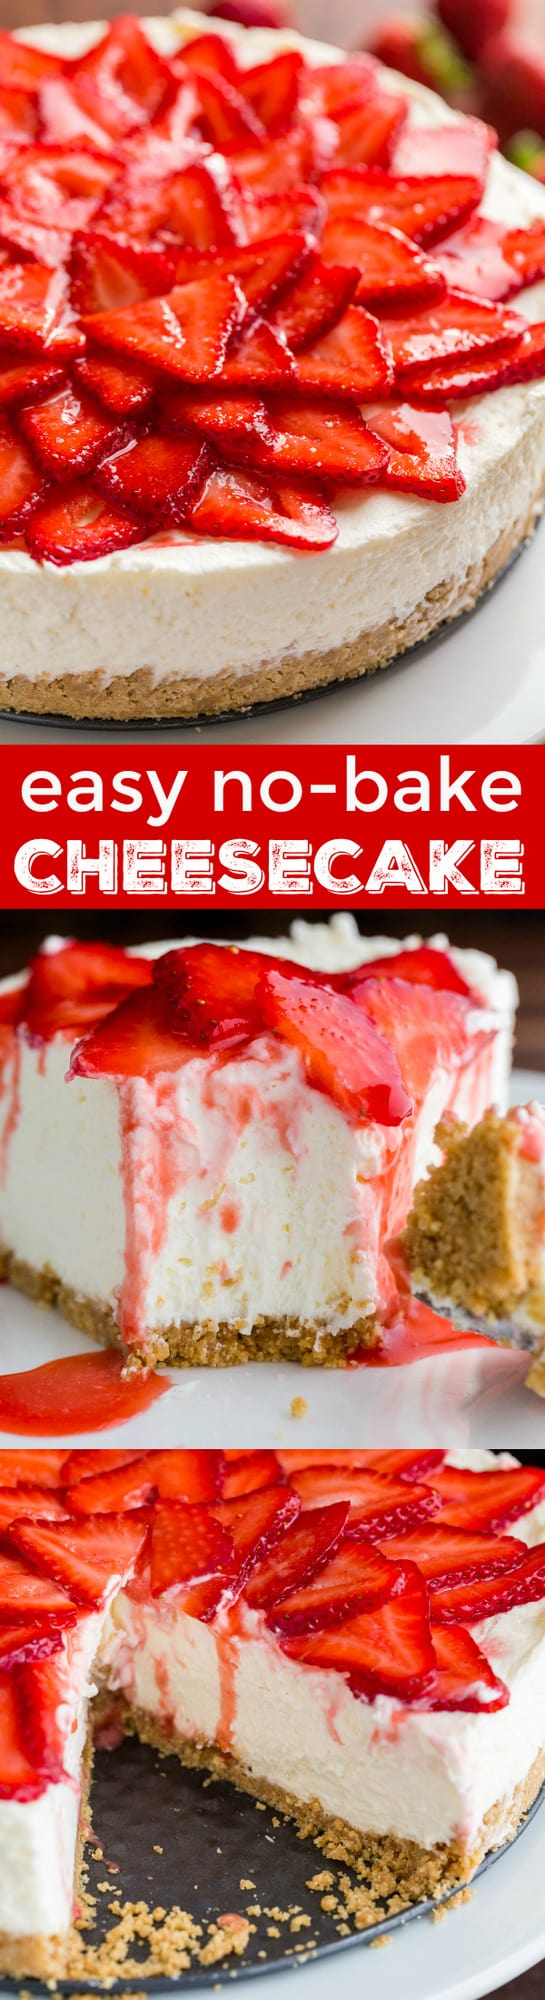 This No-Bake Cheesecake is an elegant, crowd pleasing summer dessert. From the crust to the velvety whipped cheesecake center, this is 100% a NO-BAKE dessert. Mascarpone cheese elevates the flavor and texture of this easy no bake cheesecake and the double strawberry topping is lip-smacking good!   natashaskitchen.com